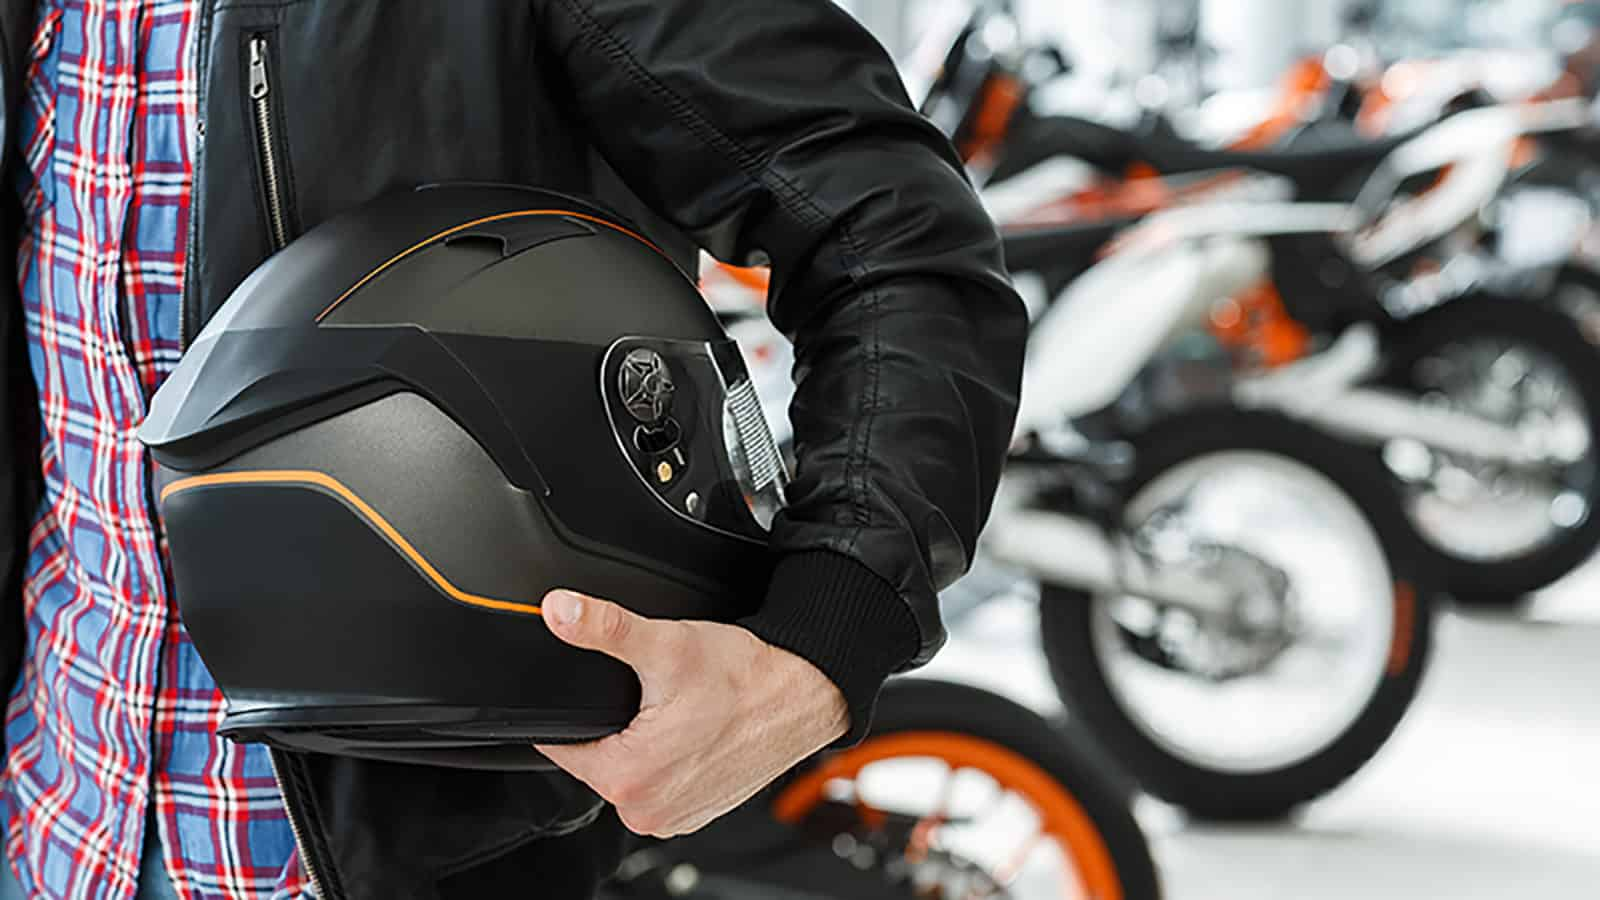 What are the Best Brands of Motorcycle Helmets?